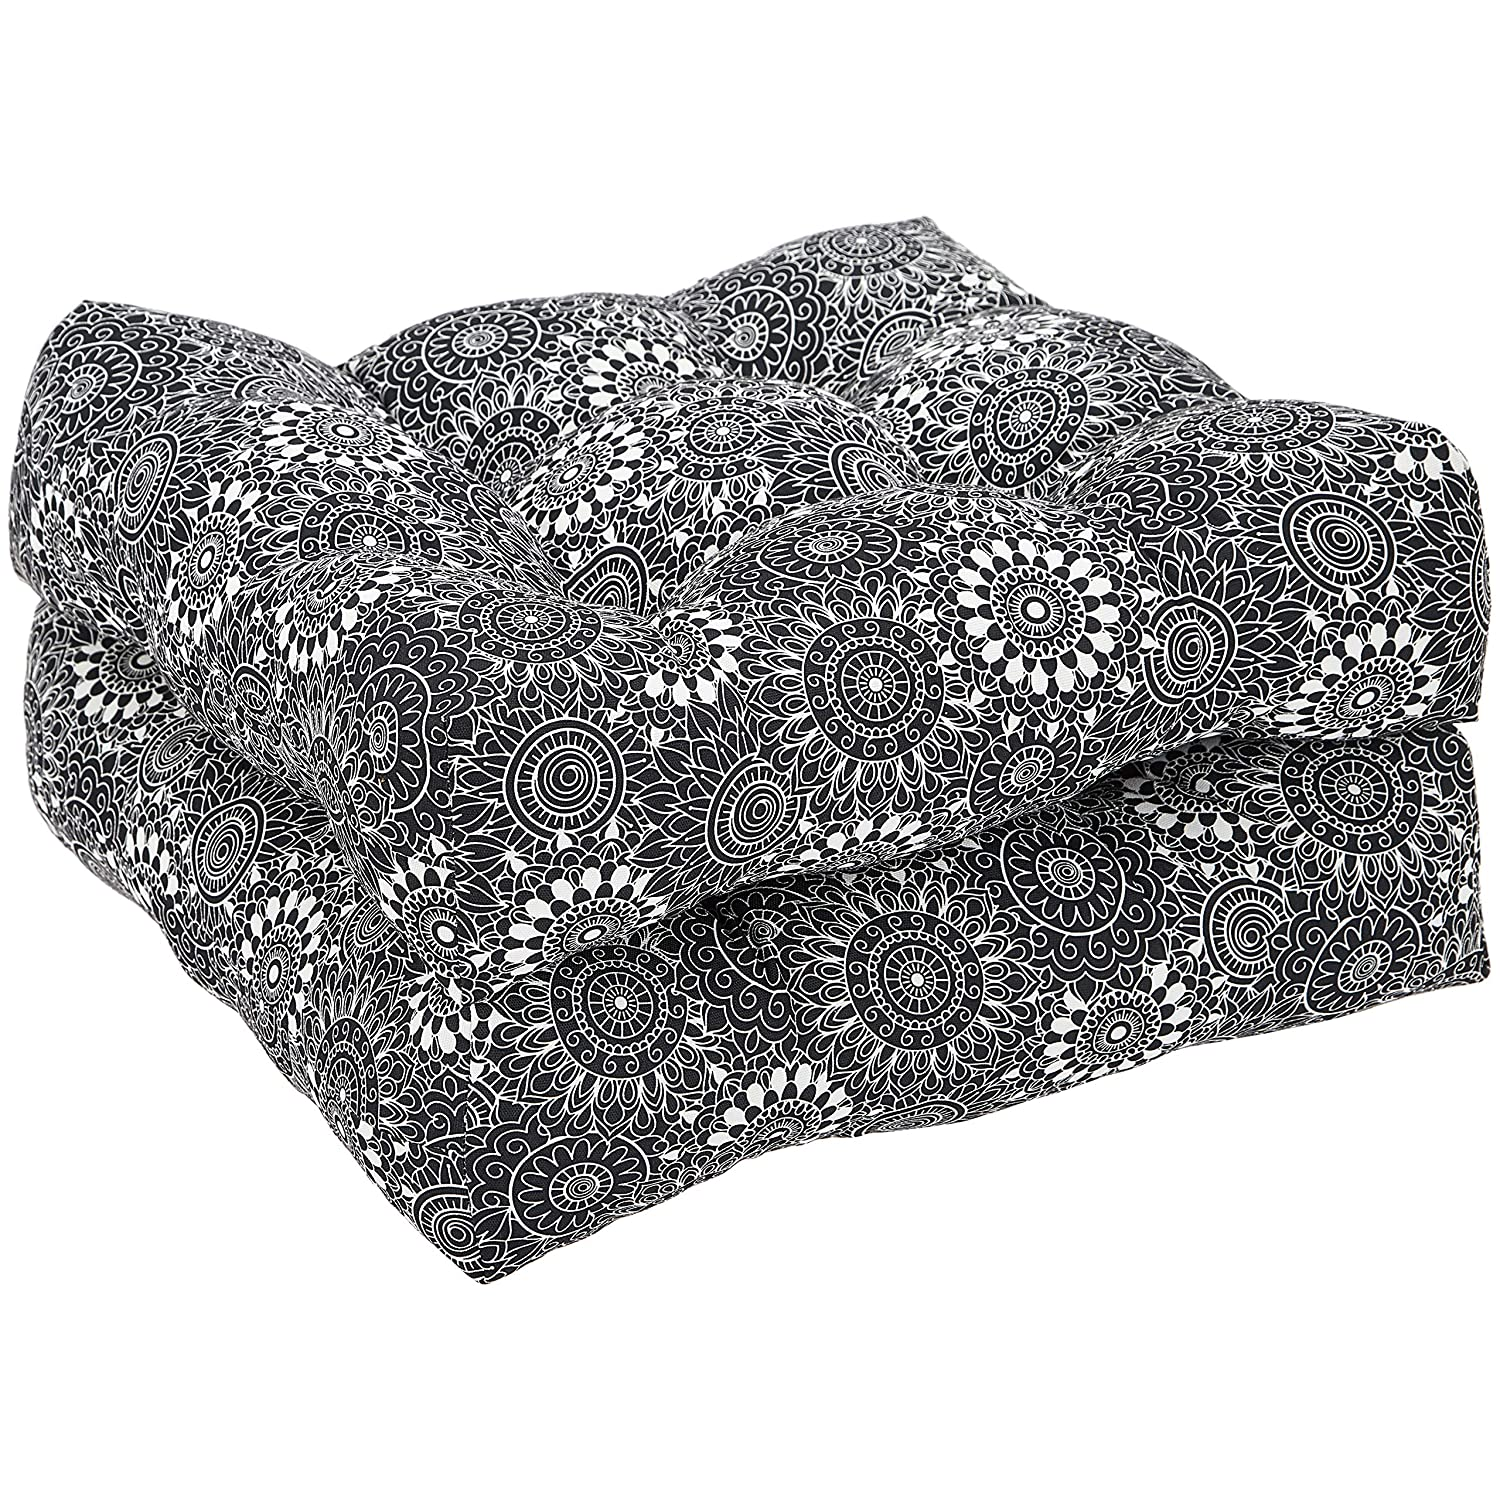 AmazonBasics Tufted Outdoor Seat Patio Cushion - Pack of 2, 19 x 19 x 5 Inches, Black Floral